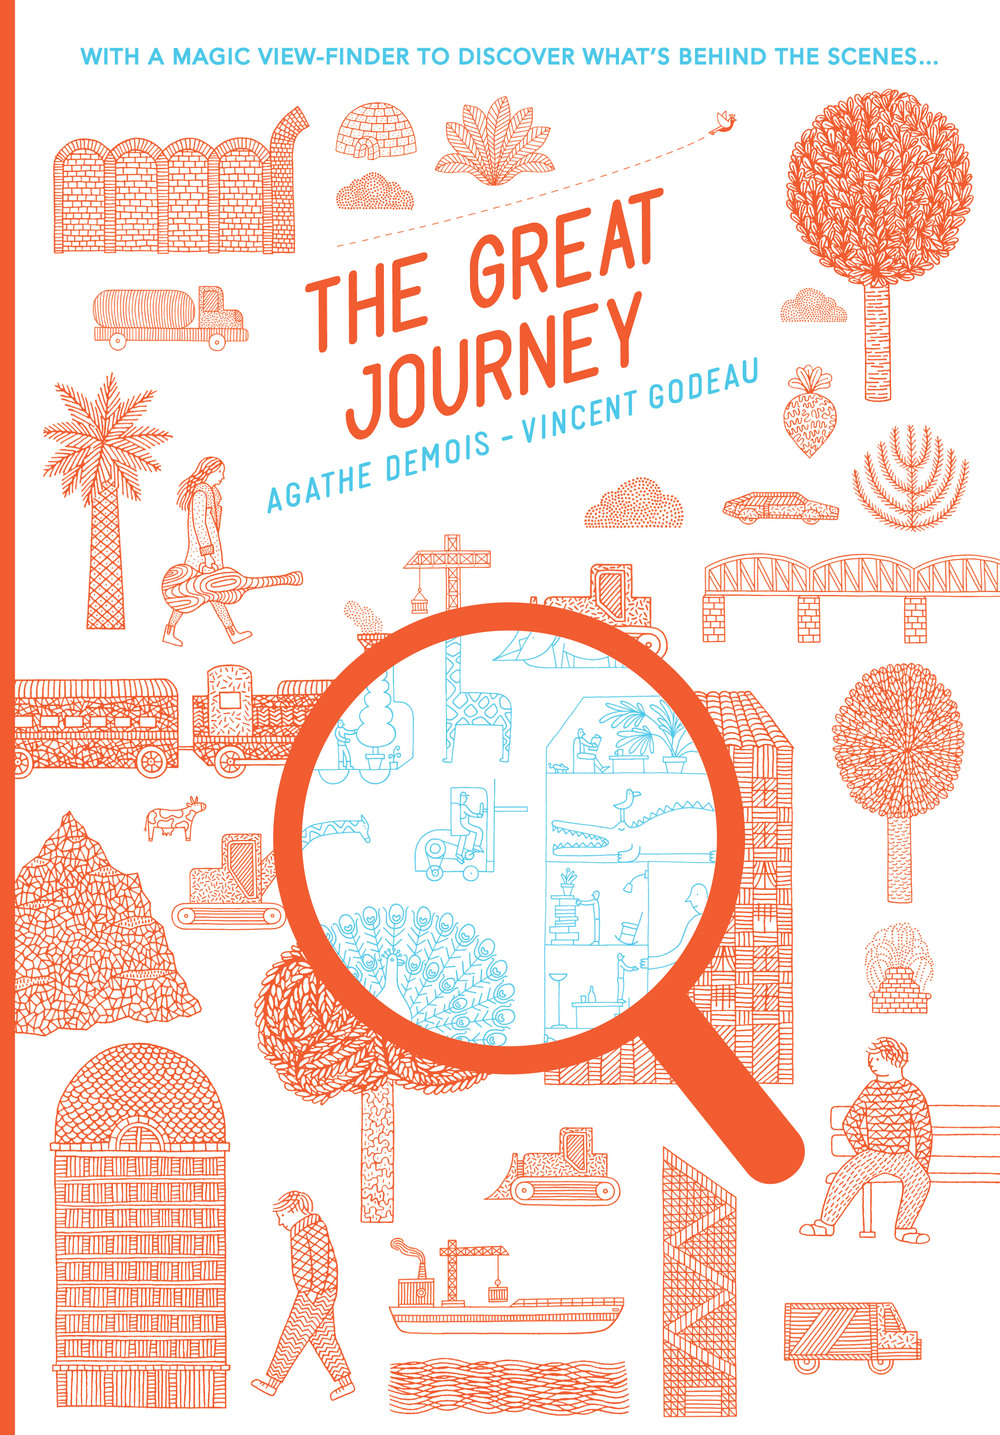 The Great Journey by  Vincent Godeau  and  Agathe Demois  ( Tate Publishing )   Not many books make us gasp. This one definitely did. In fact, we broke records on the longest jaw-drop ever when we discovered this magical book. It tells the story of a bird's journey around the world, from cities to the jungle. It comes with a magical paper magnifying glass which reveals in each scene exquisite hidden things. A must buy!    Get yours  here .